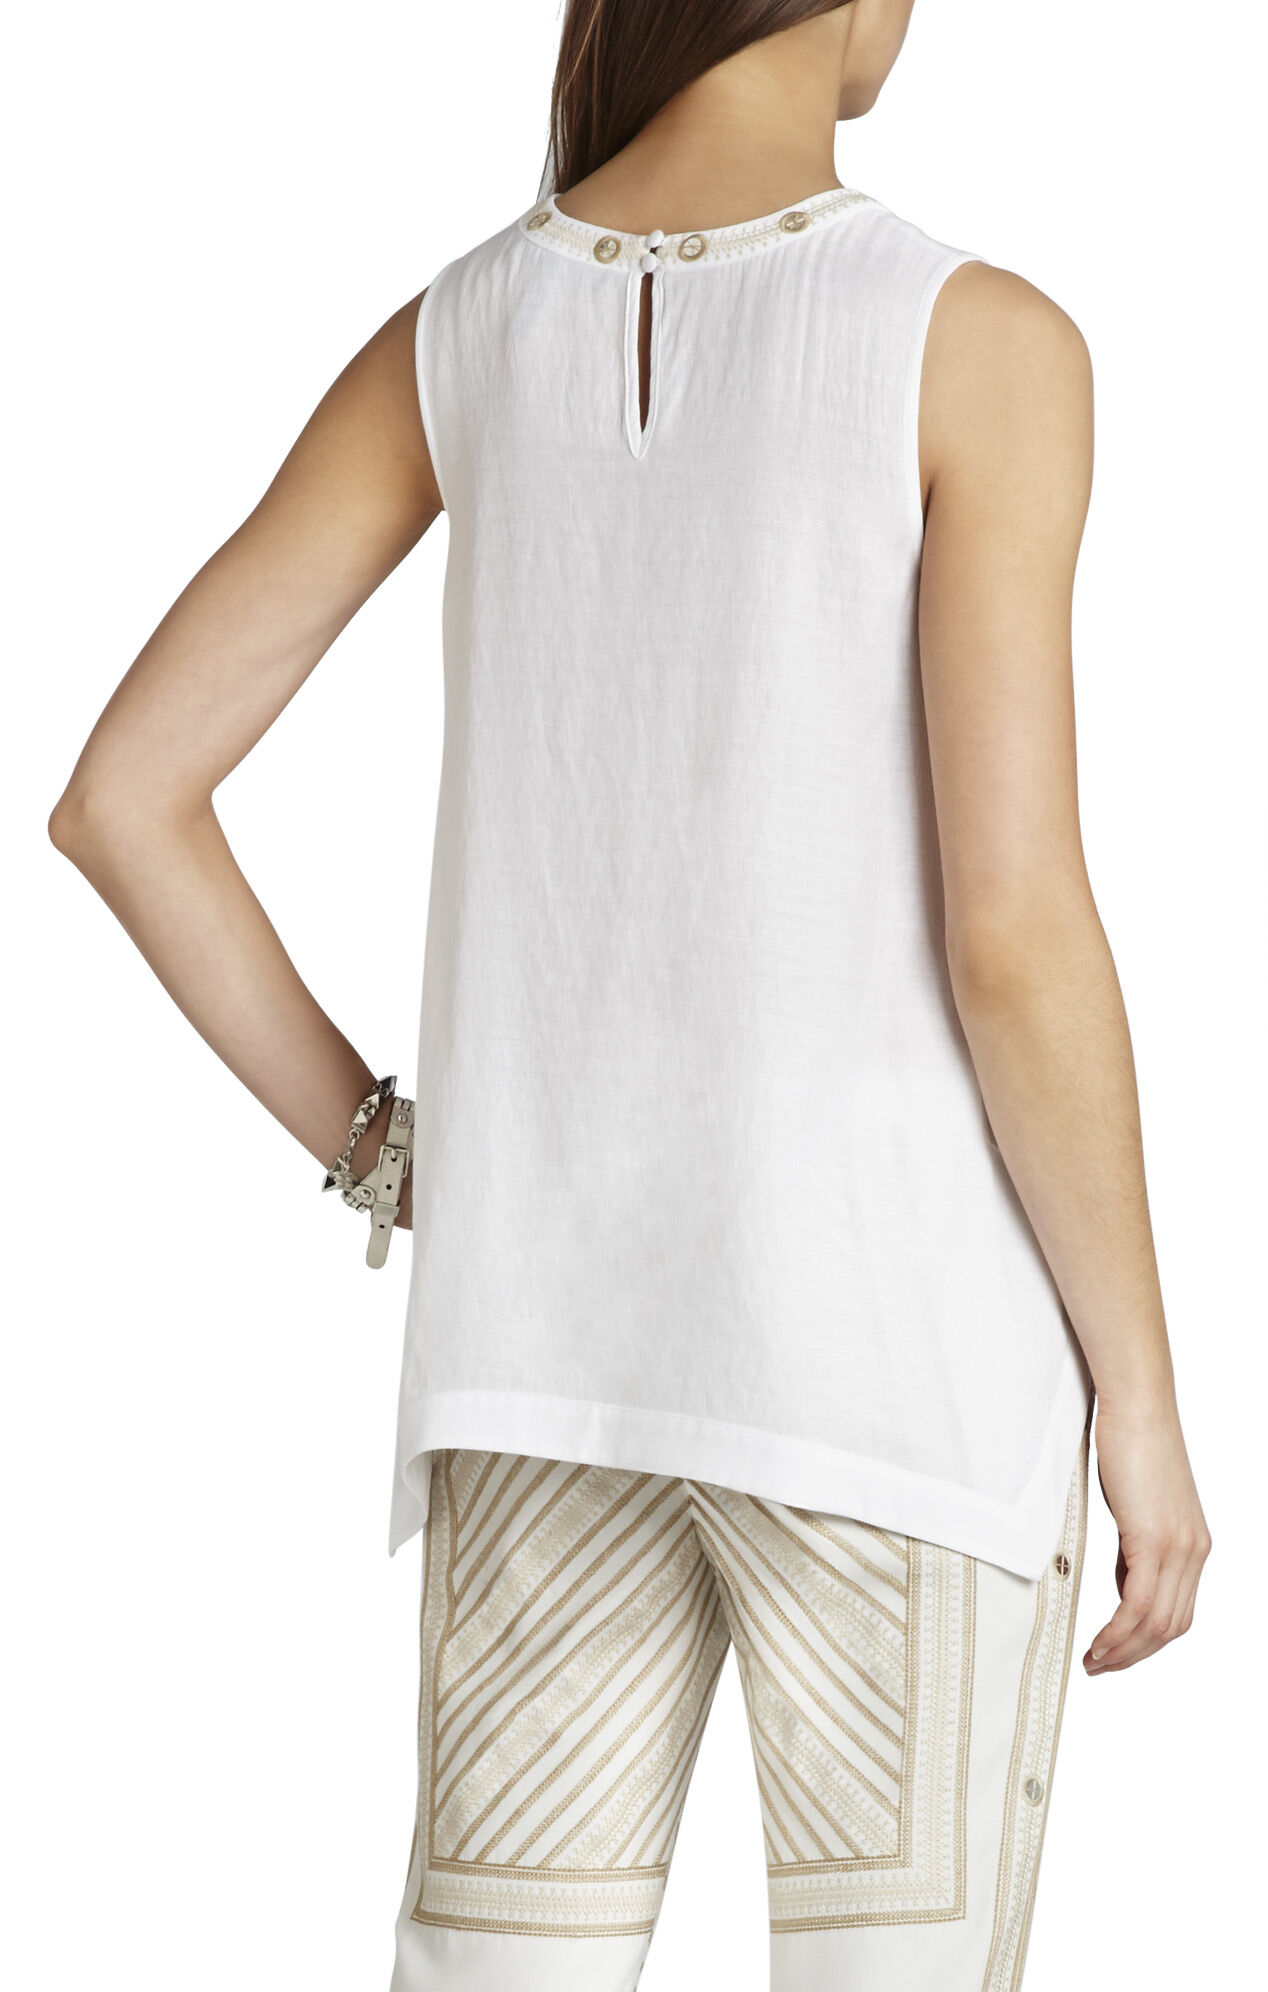 Shirley Embellished Sleeveless Top